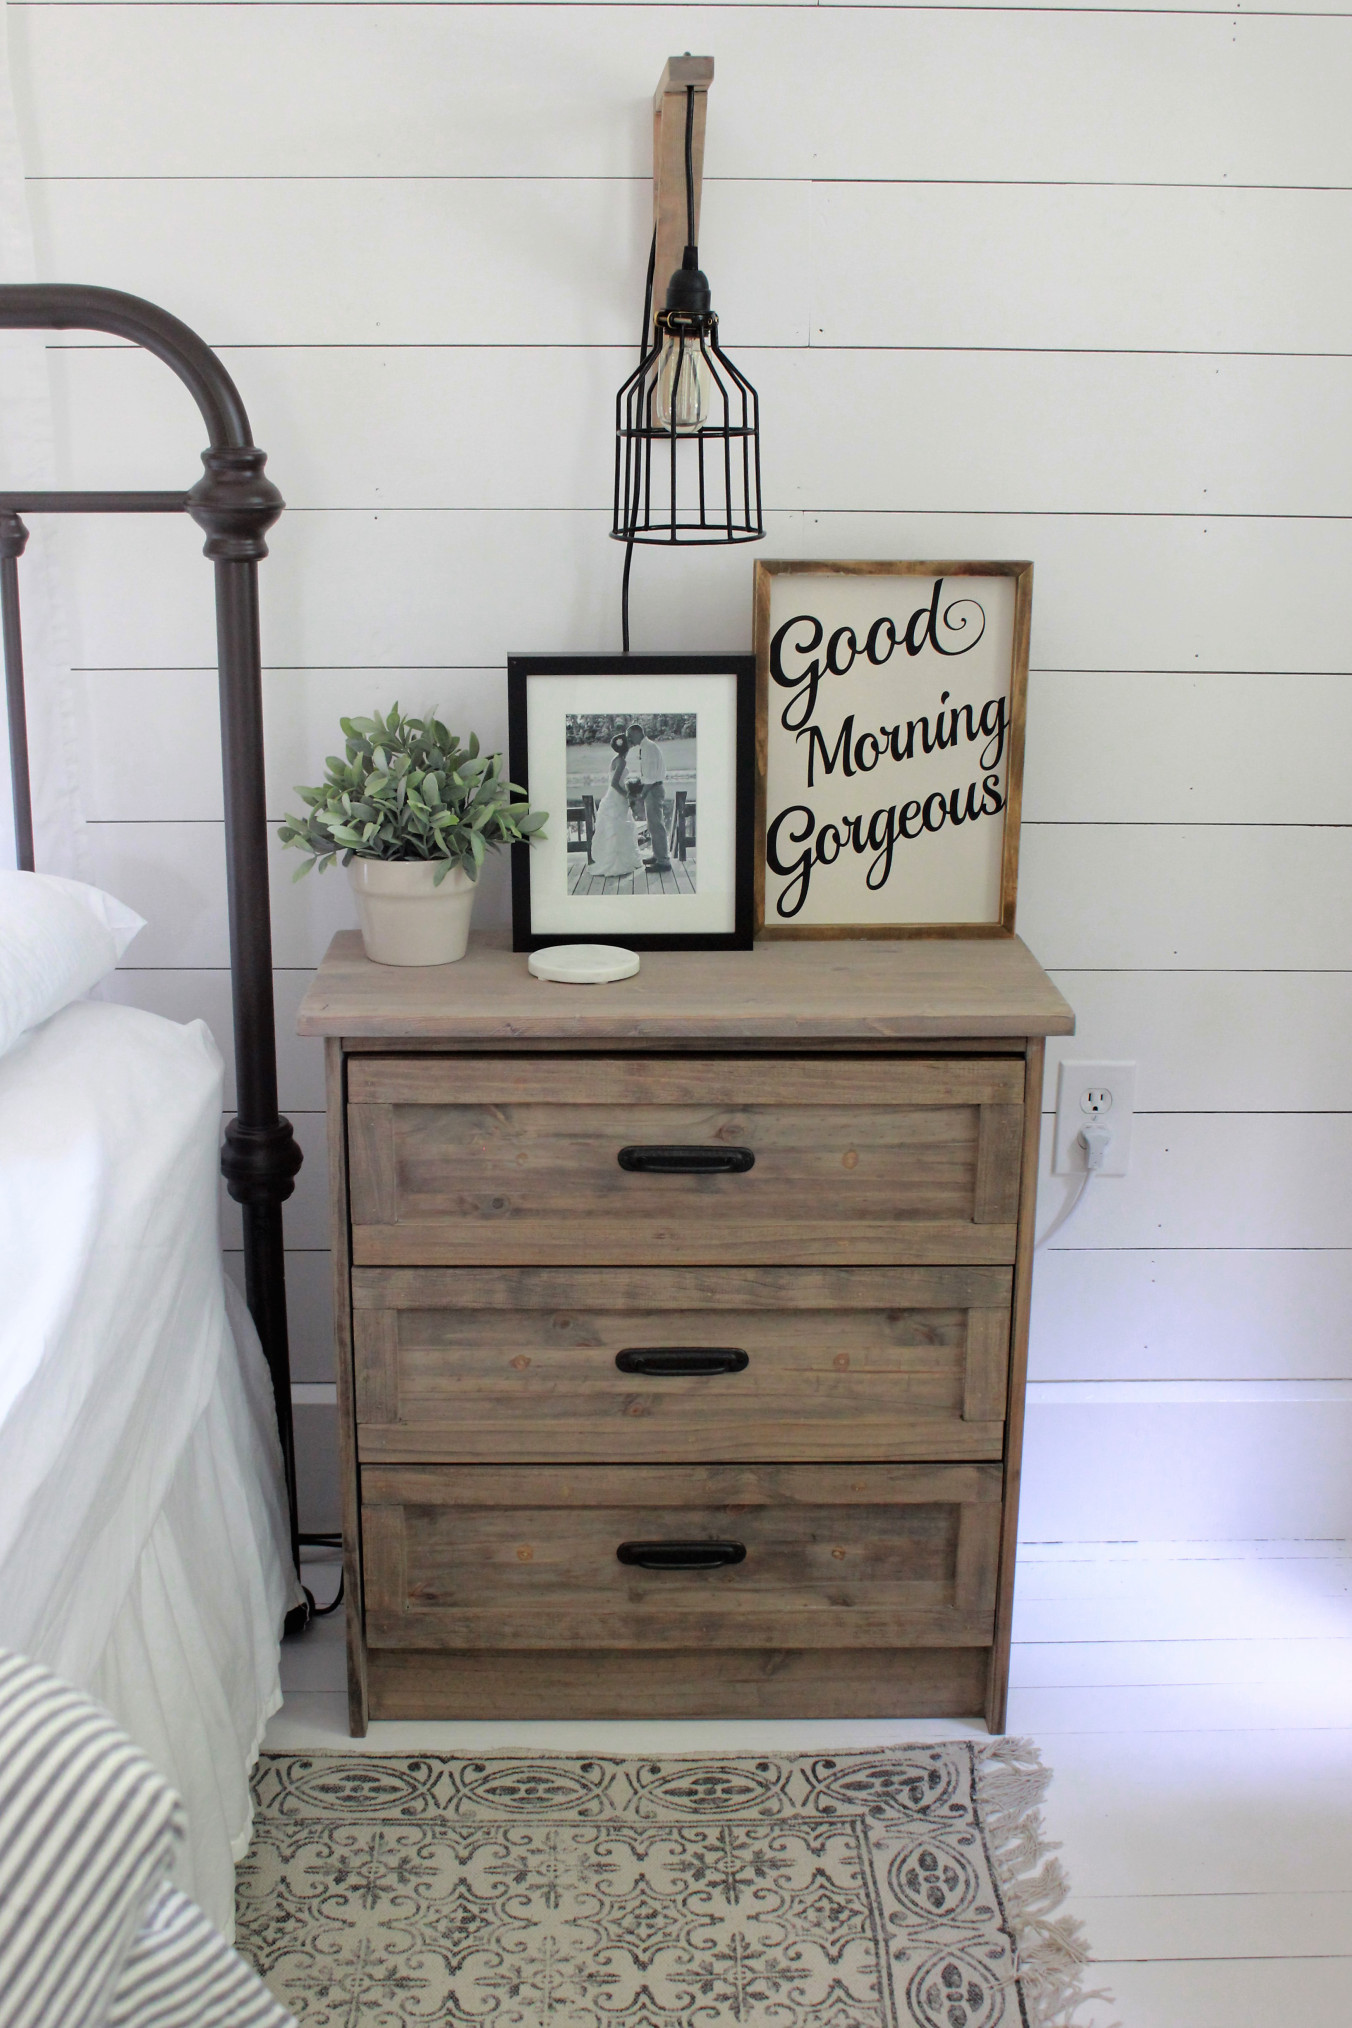 The lightly stained nightstand against the white shiplap wall evokes farmhouse.